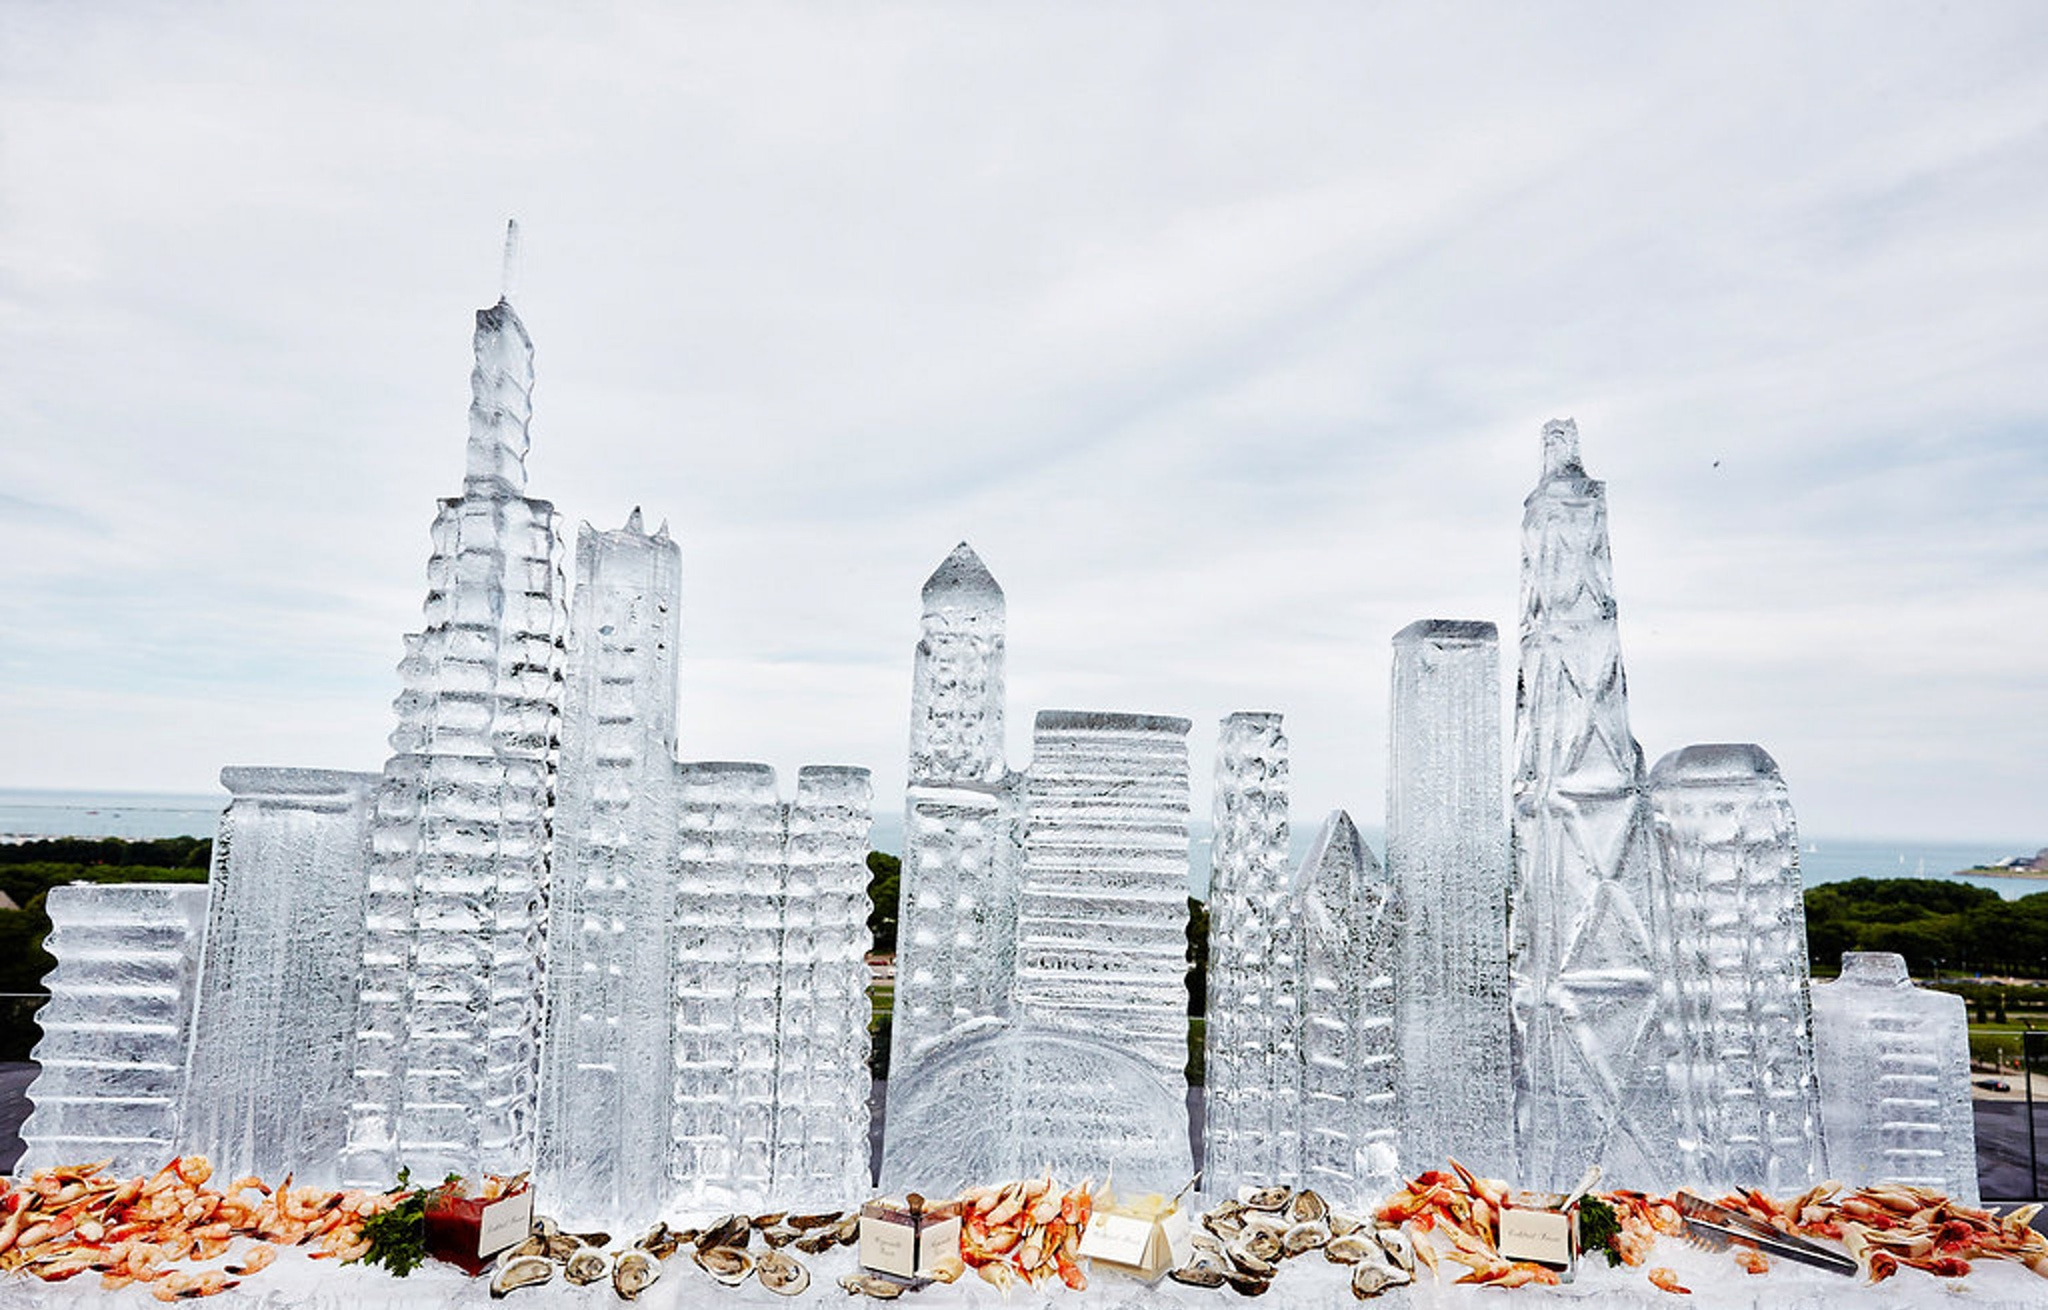 Skyline ice sculpture